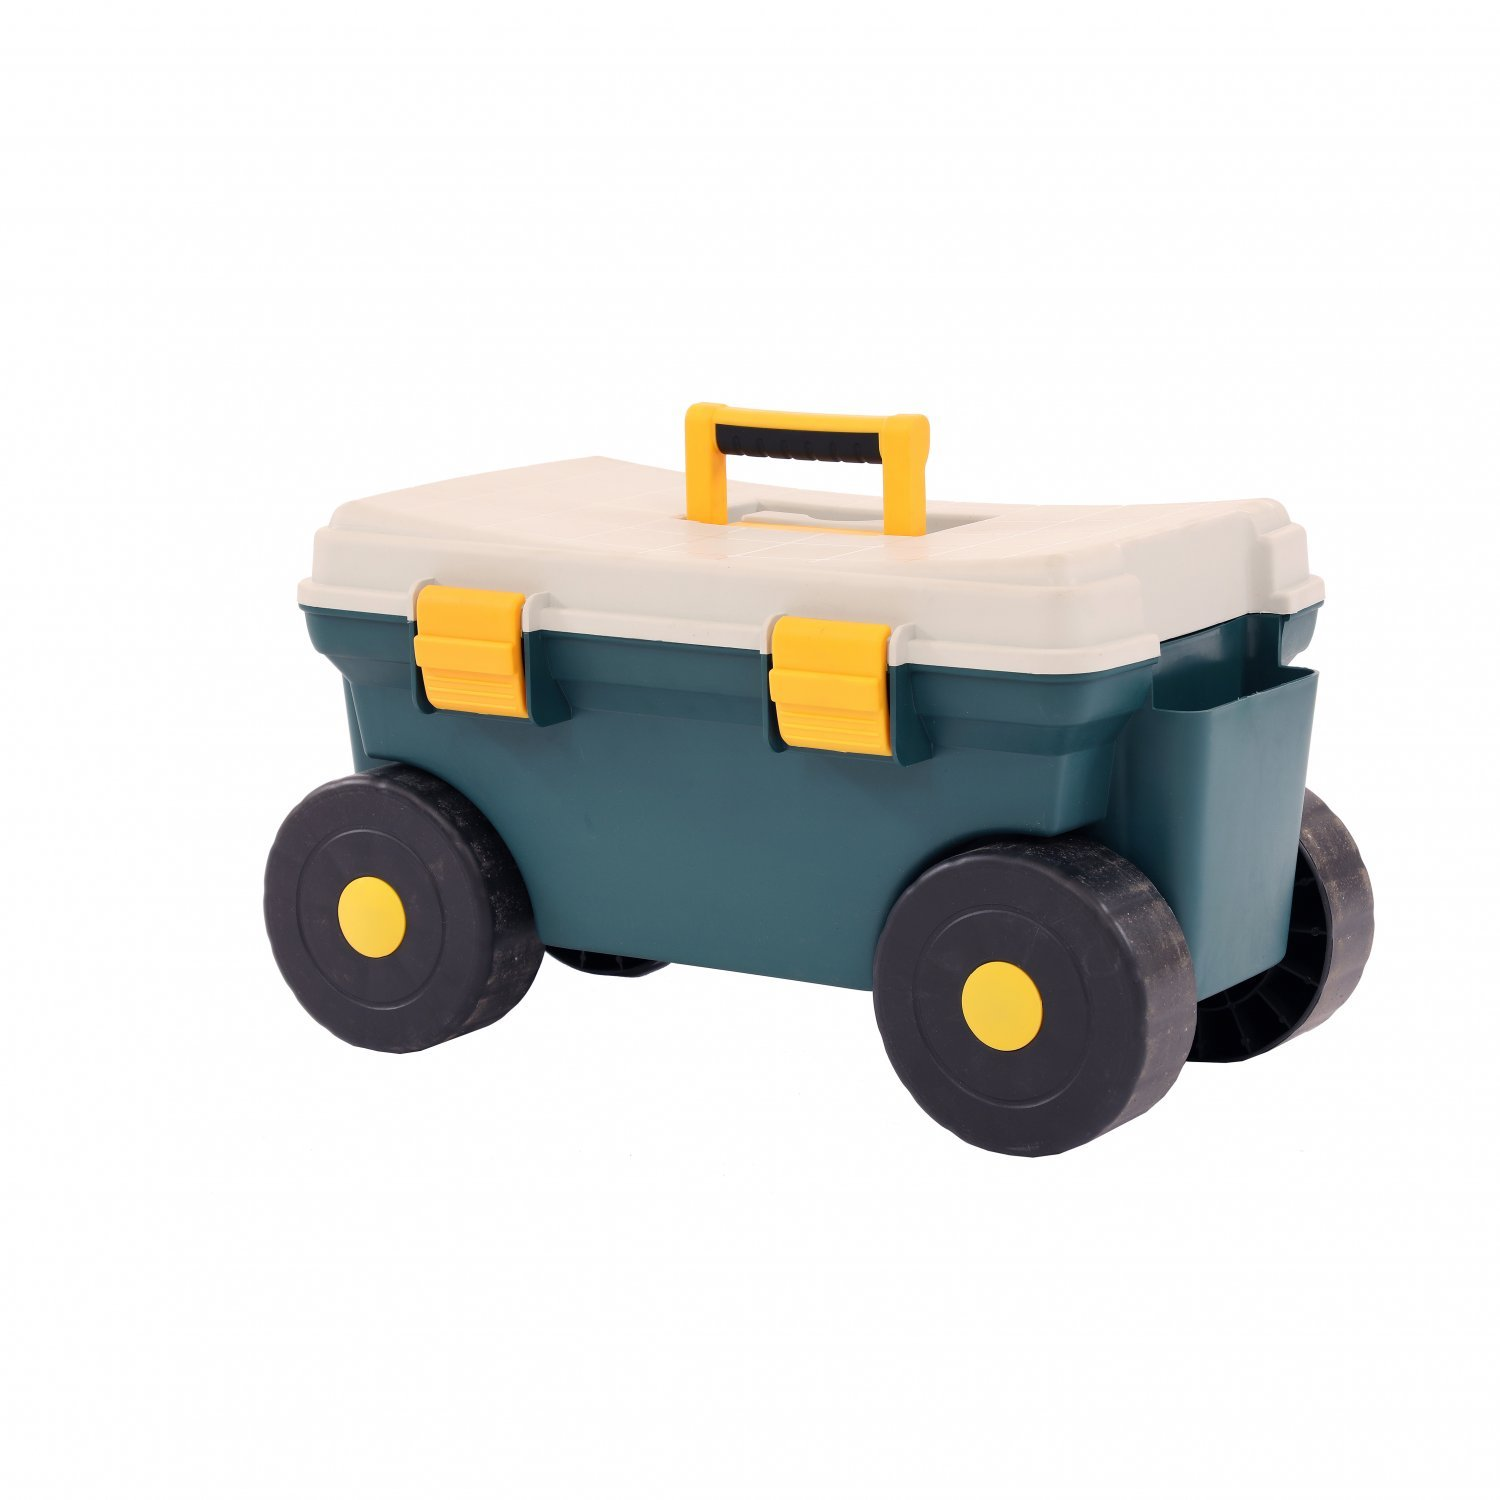 Outdoor Garden Rolling Tool Cart Storage Trolley Seat Box 17 99 Oypla Stocking The Very Best In Toys Electrical Furniture Homeware Garden Gifts And Much More